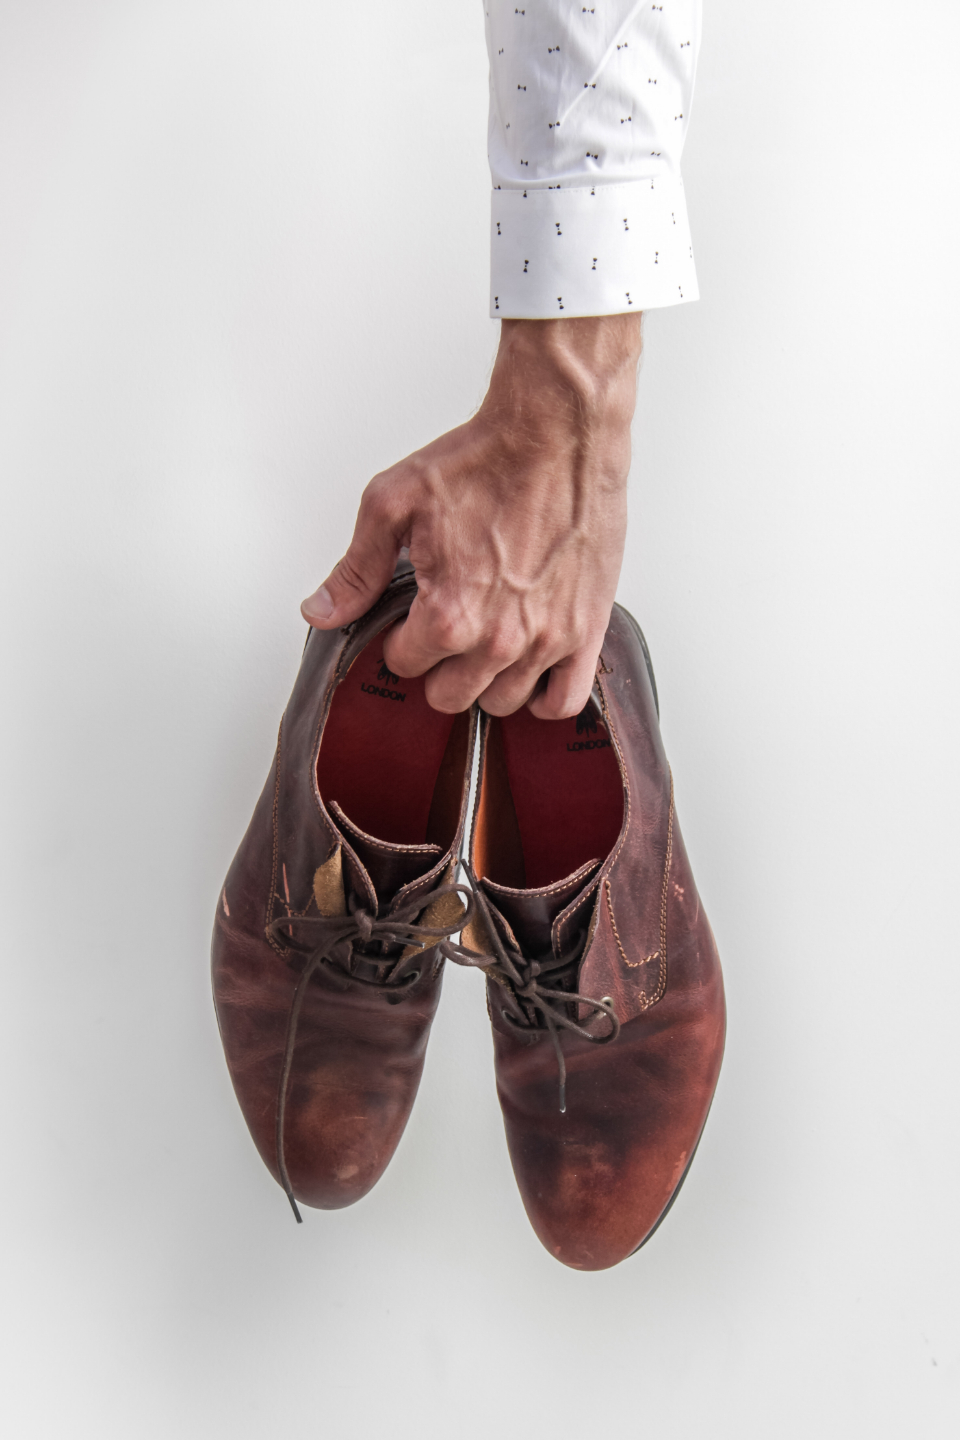 man holding shoes